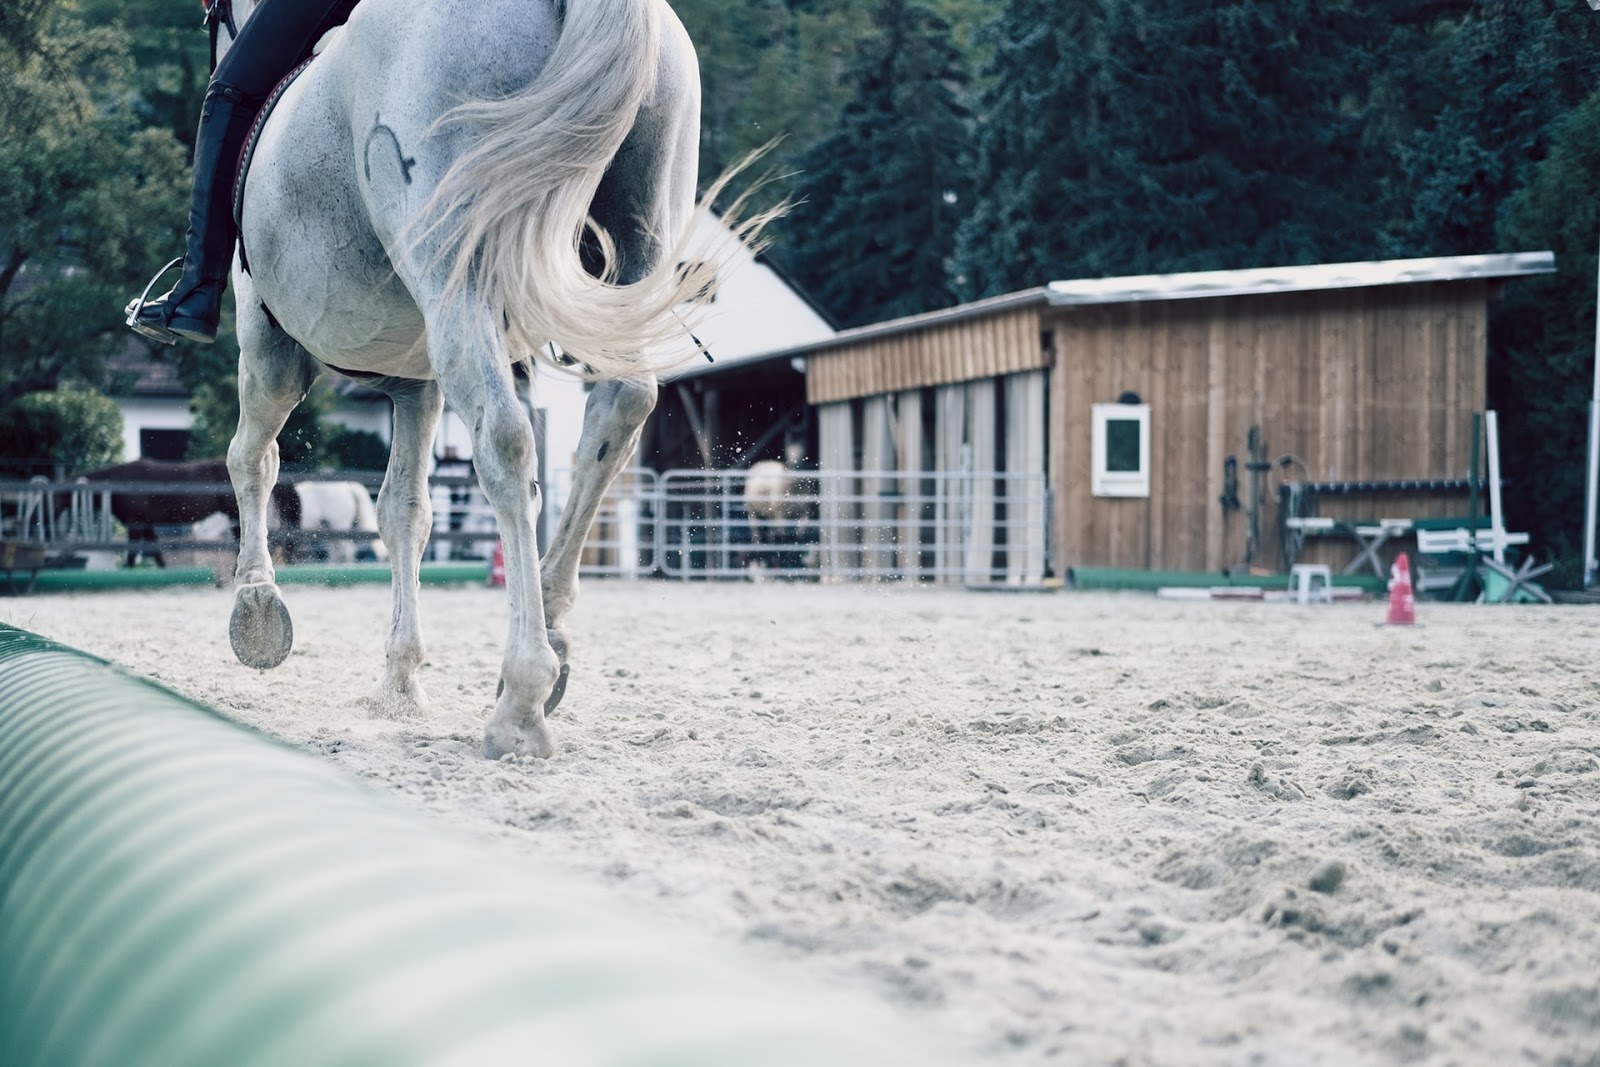 A white horse from the back, you can't see its head. It trots with its rider in a training ring.